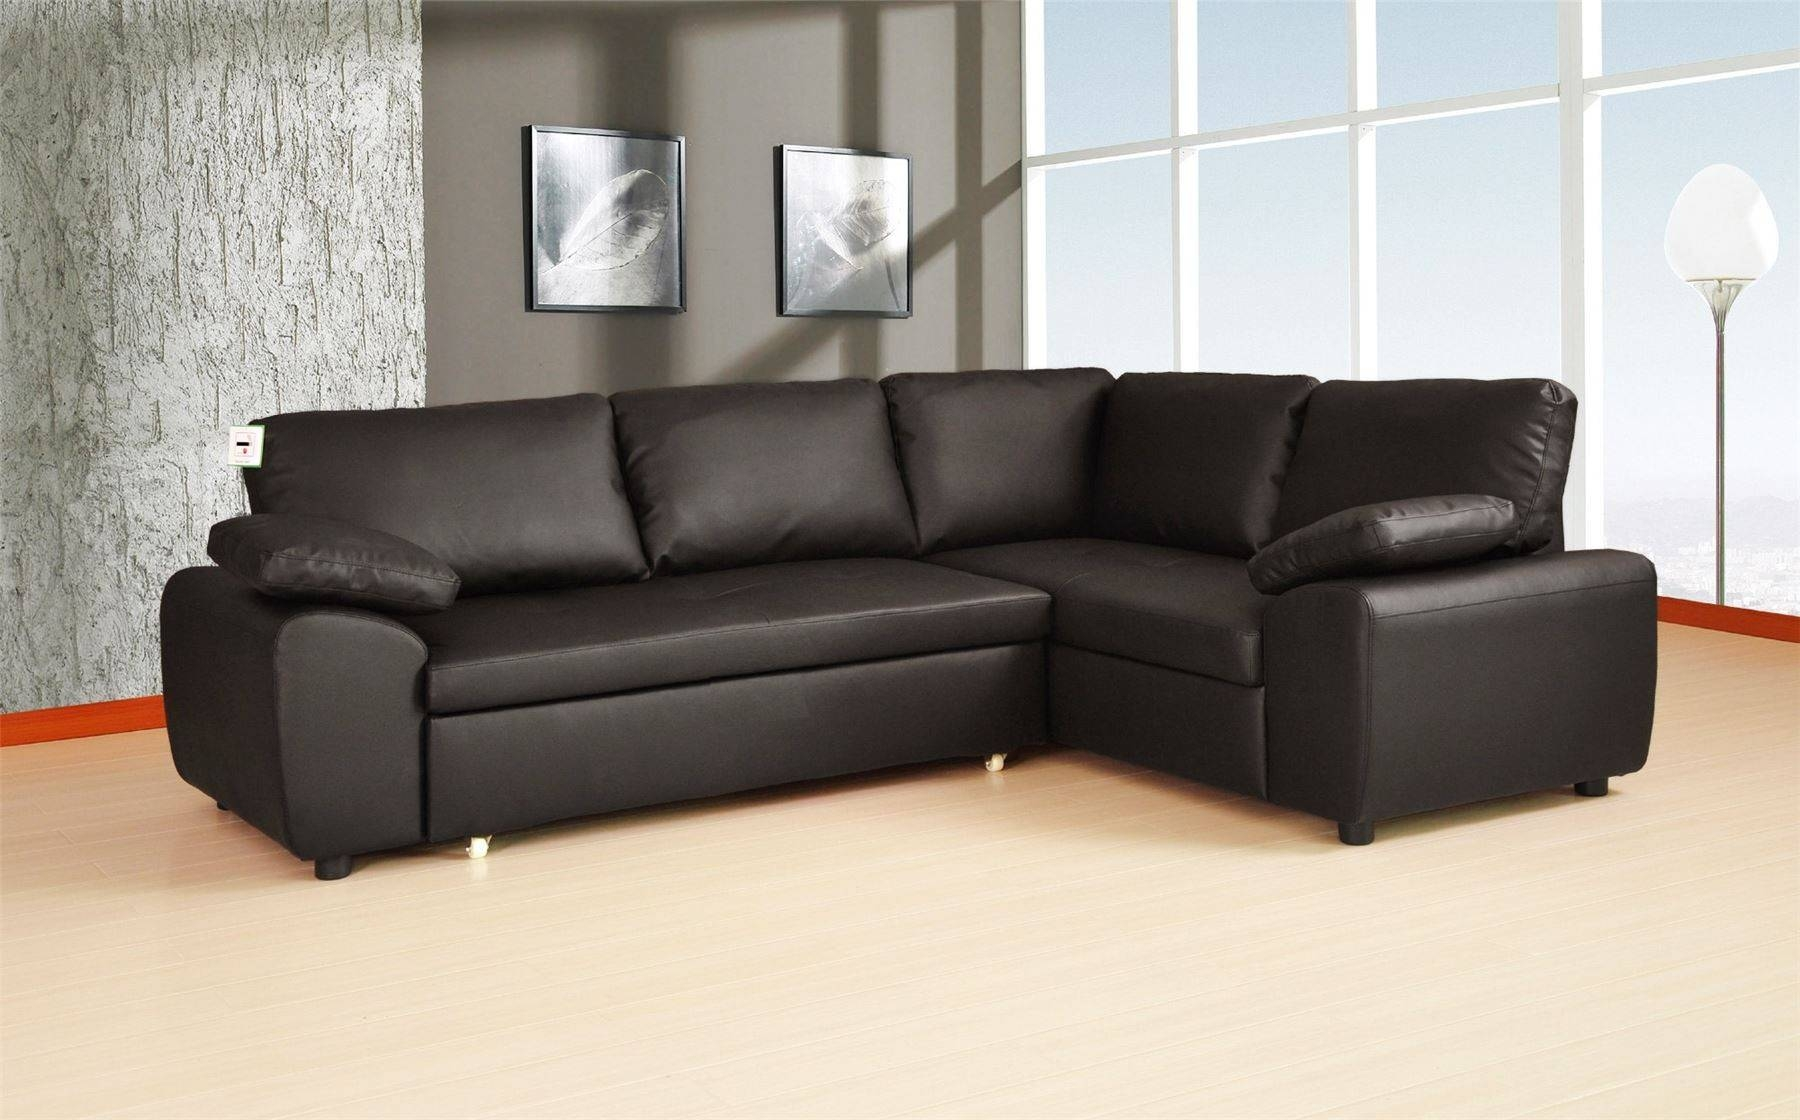 Decorate Your Home With Black Leather Corner Sofa throughout Black Corner Sofas (Image 10 of 15)